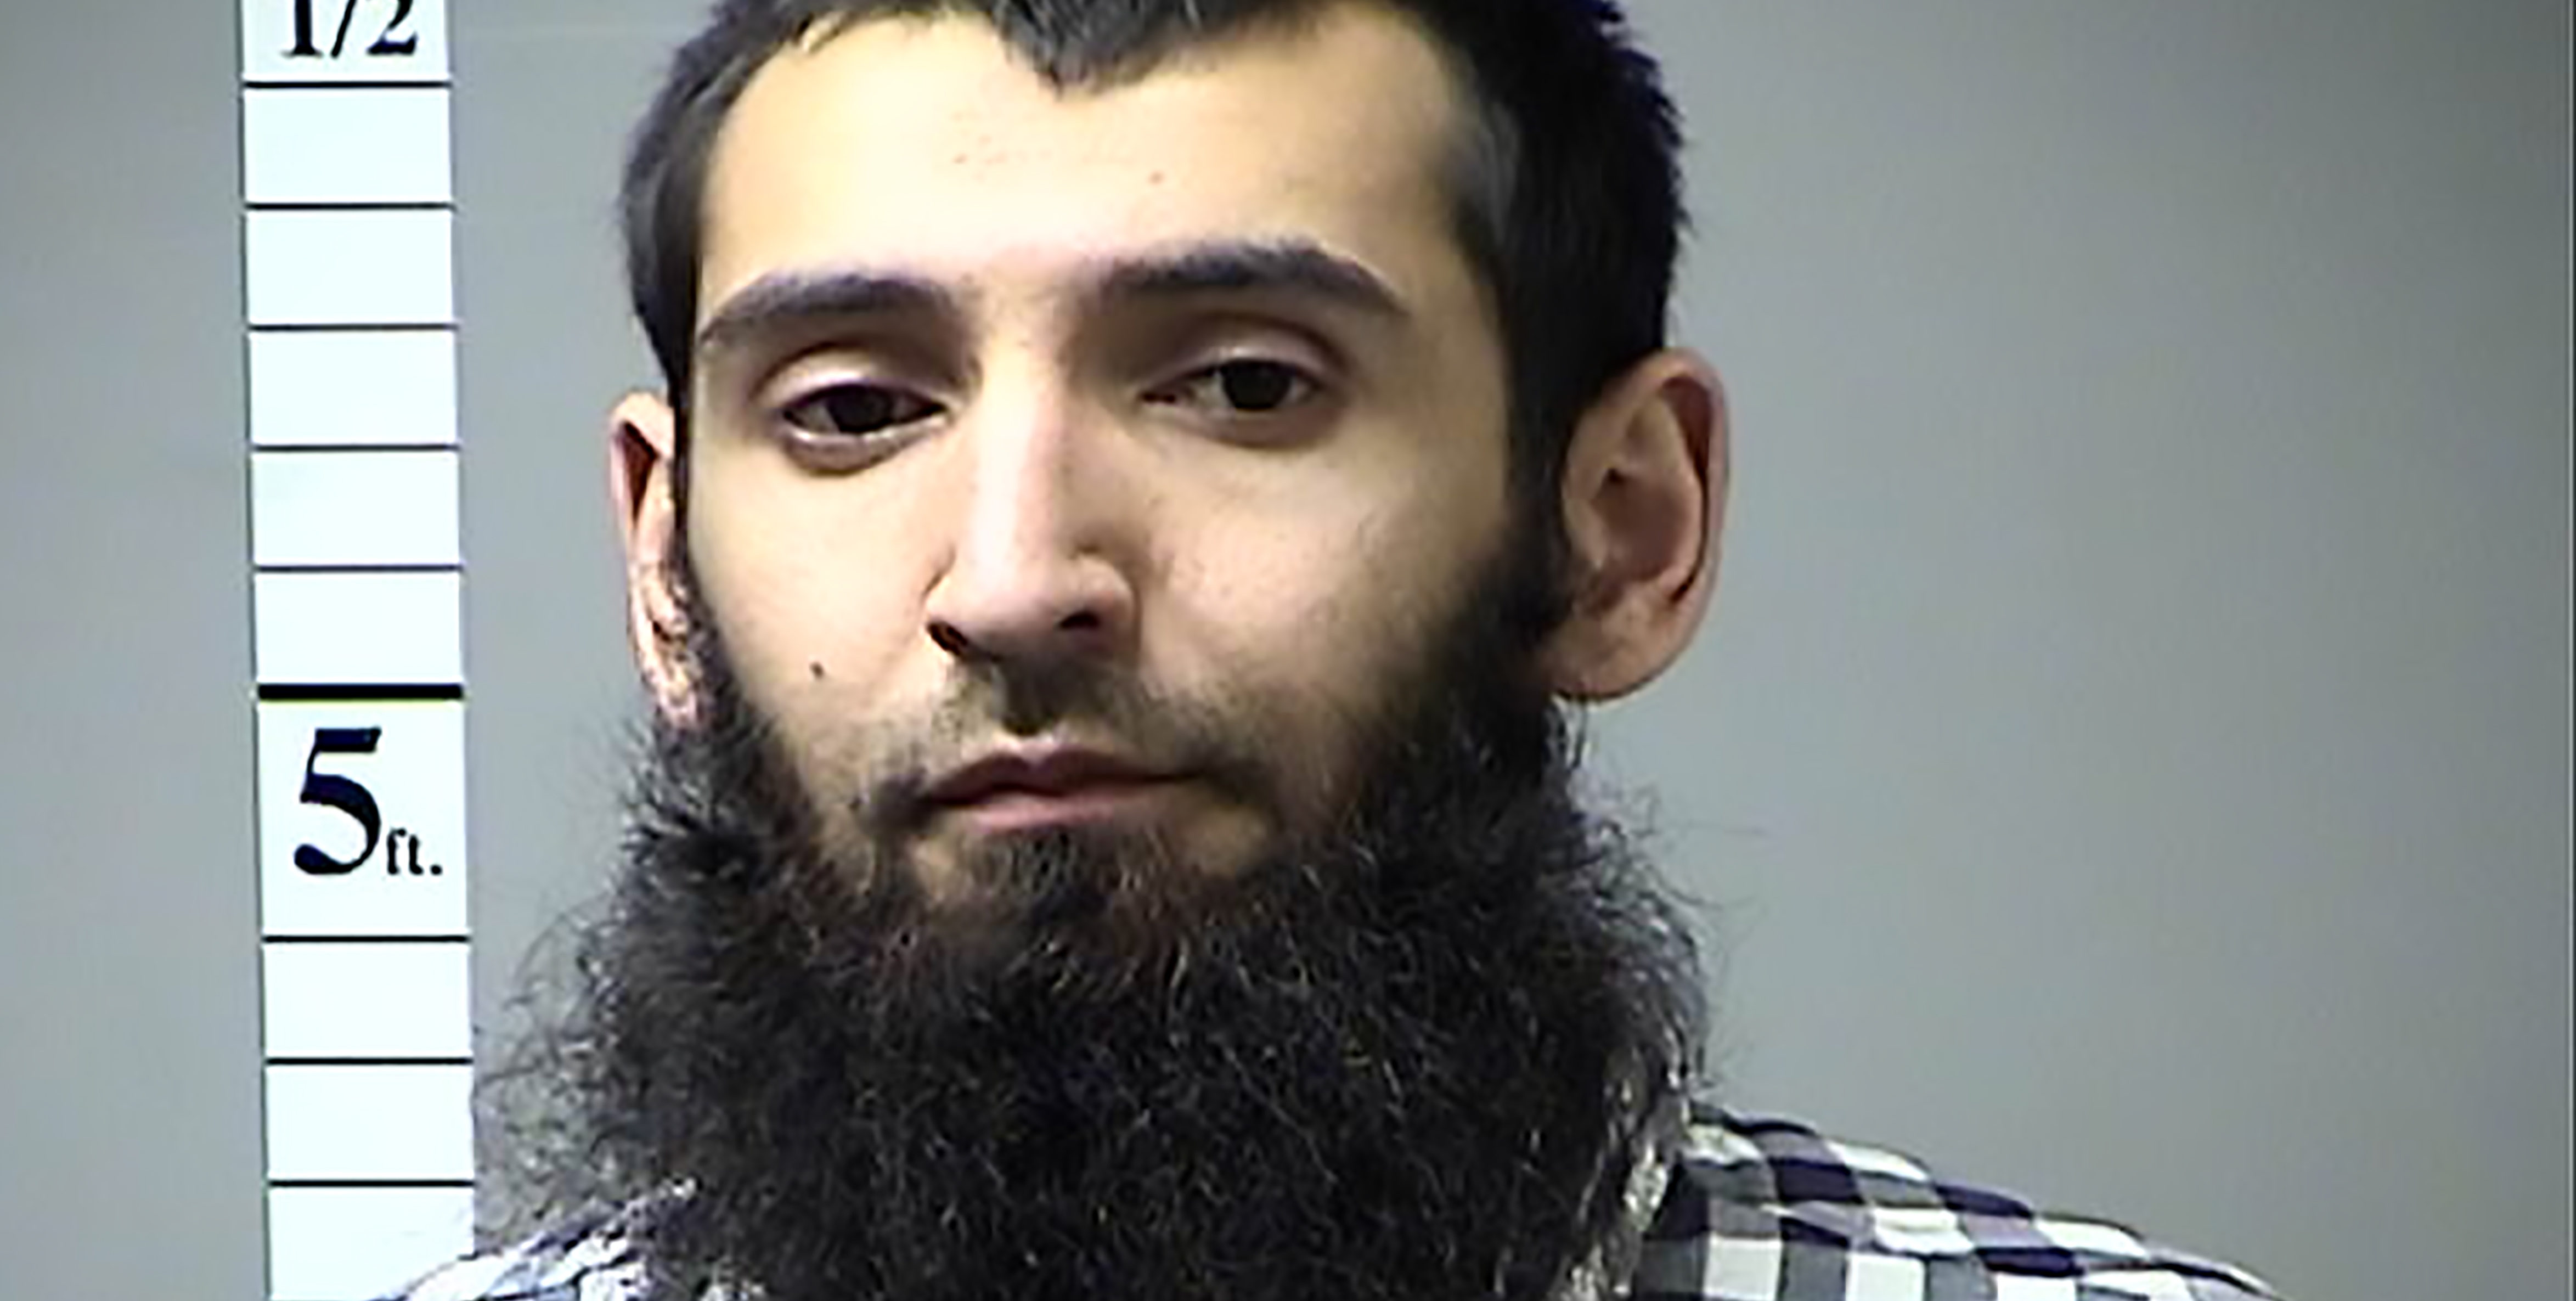 "This handout photograph obtained courtesy of the St. Charles County Dept. of Corrections in the midwestern US state of Missouri on October 31, 2017 shows Sayfullah Habibullahevic Saipov, the suspectecd driver who killed eight people in New York on October 31, 2017, mowing down cyclists and pedestrians, before striking a school bus in what officials branded a ""cowardly act of terror.""   Eleven others were seriously injured in the broad daylight assault and first deadly terror-related attack in America's financial and entertainment capital since the September 11, 2001 Al-Qaeda hijackings brought down the Twin Towers. In April of 2016 a warrant was issued in Missouri for his failure to pay a traffic citation.   / AFP PHOTO / St. Charles County Dept. of Corrections / == RESTRICTED TO EDITORIAL USE  / MANDATORY CREDIT:  ""AFP PHOTO /  ST. CHARLES COUNTY DEPT. OF CORRECTIONS"" / NO MARKETING / NO ADVERTISING CAMPAIGNS /  DISTRIBUTED AS A SERVICE TO CLIENTS  ==         (Photo credit should read ST. CHARLES COUNTY DEPT. OF CORR/AFP/Getty Images)"